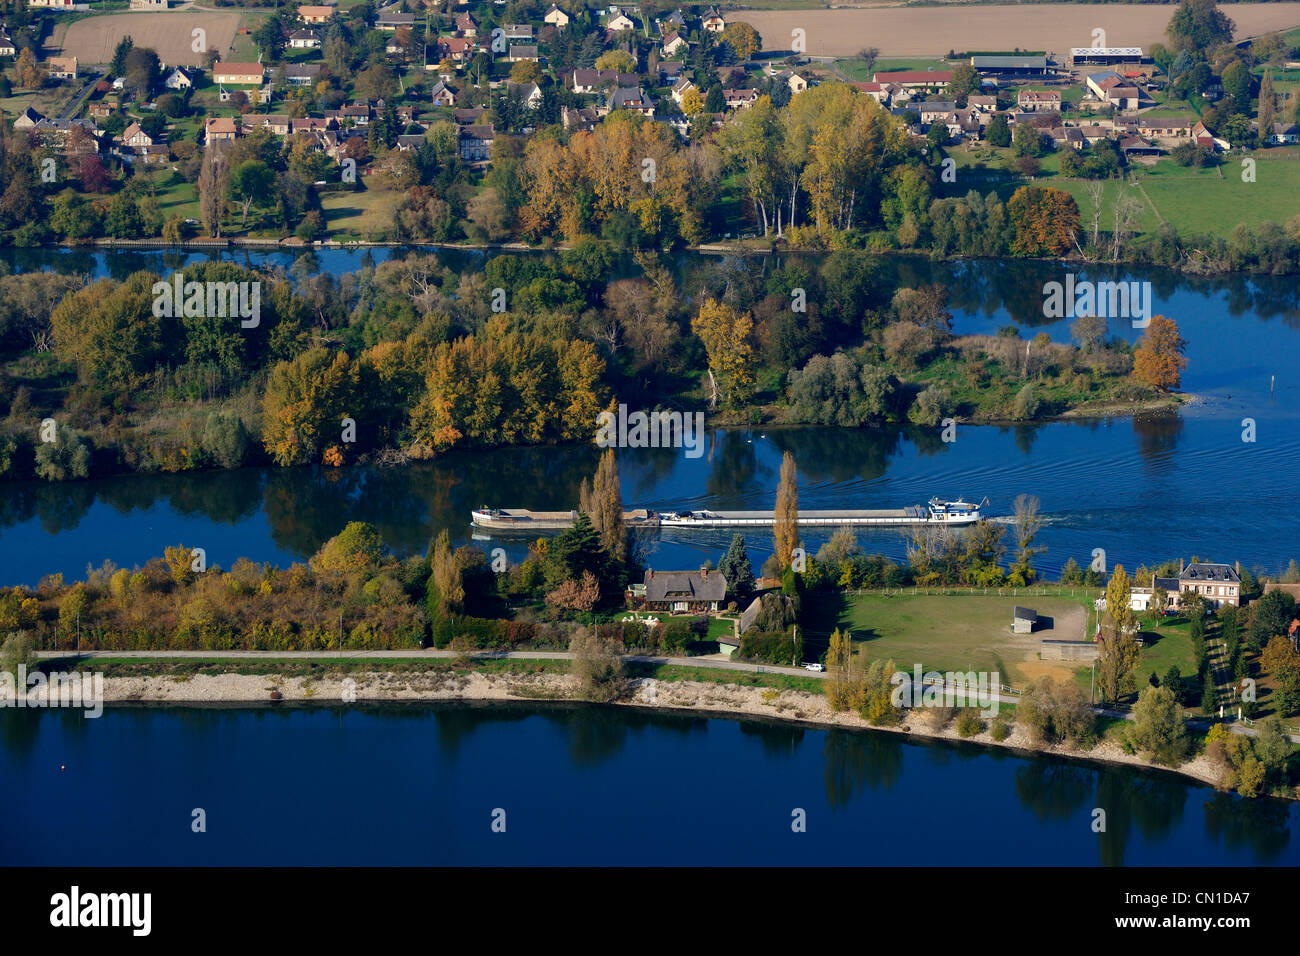 France, Eure, barge on the Seine river at Muids downstream Les Andelys (aerial view) - Stock Image